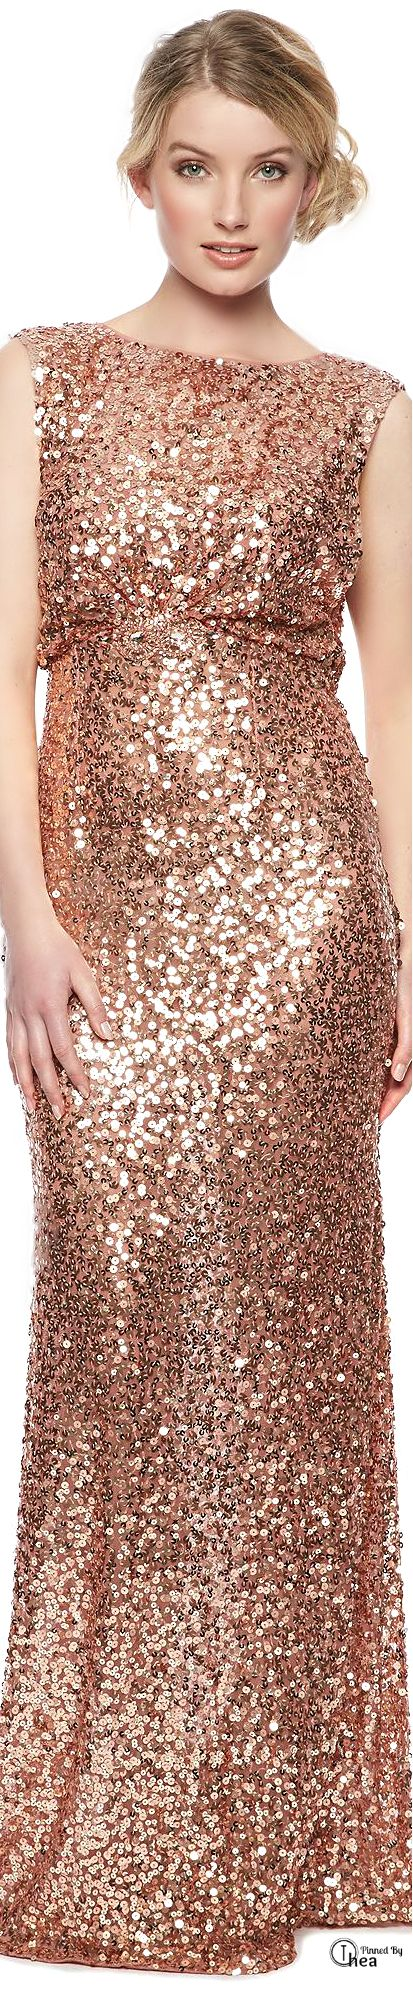 Sequined blush colored gown. | BEAUTIFUL CLOTHES, any style or event ...